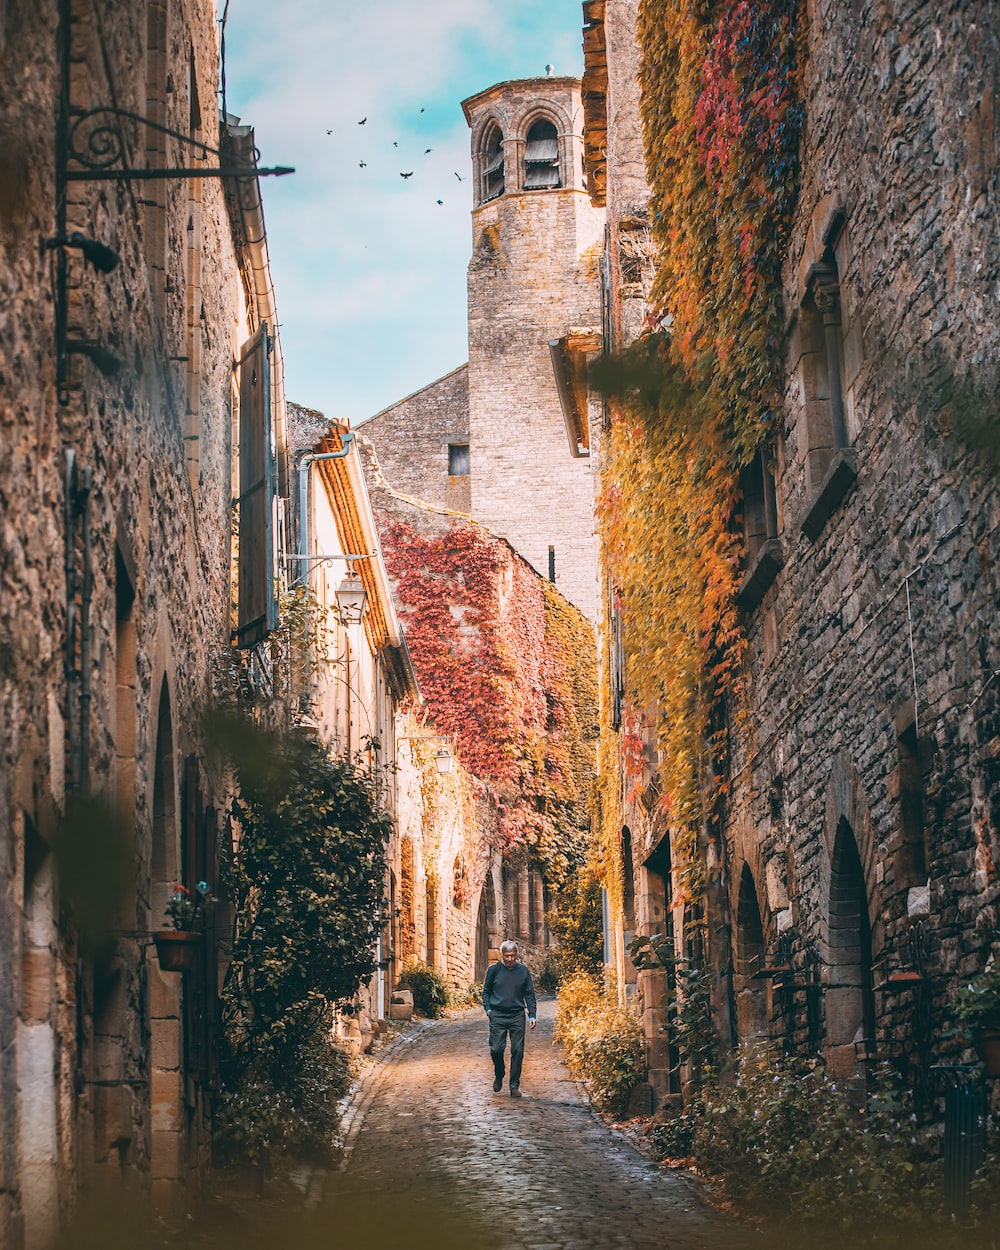 man walking at alley between concrete buildings during daytime